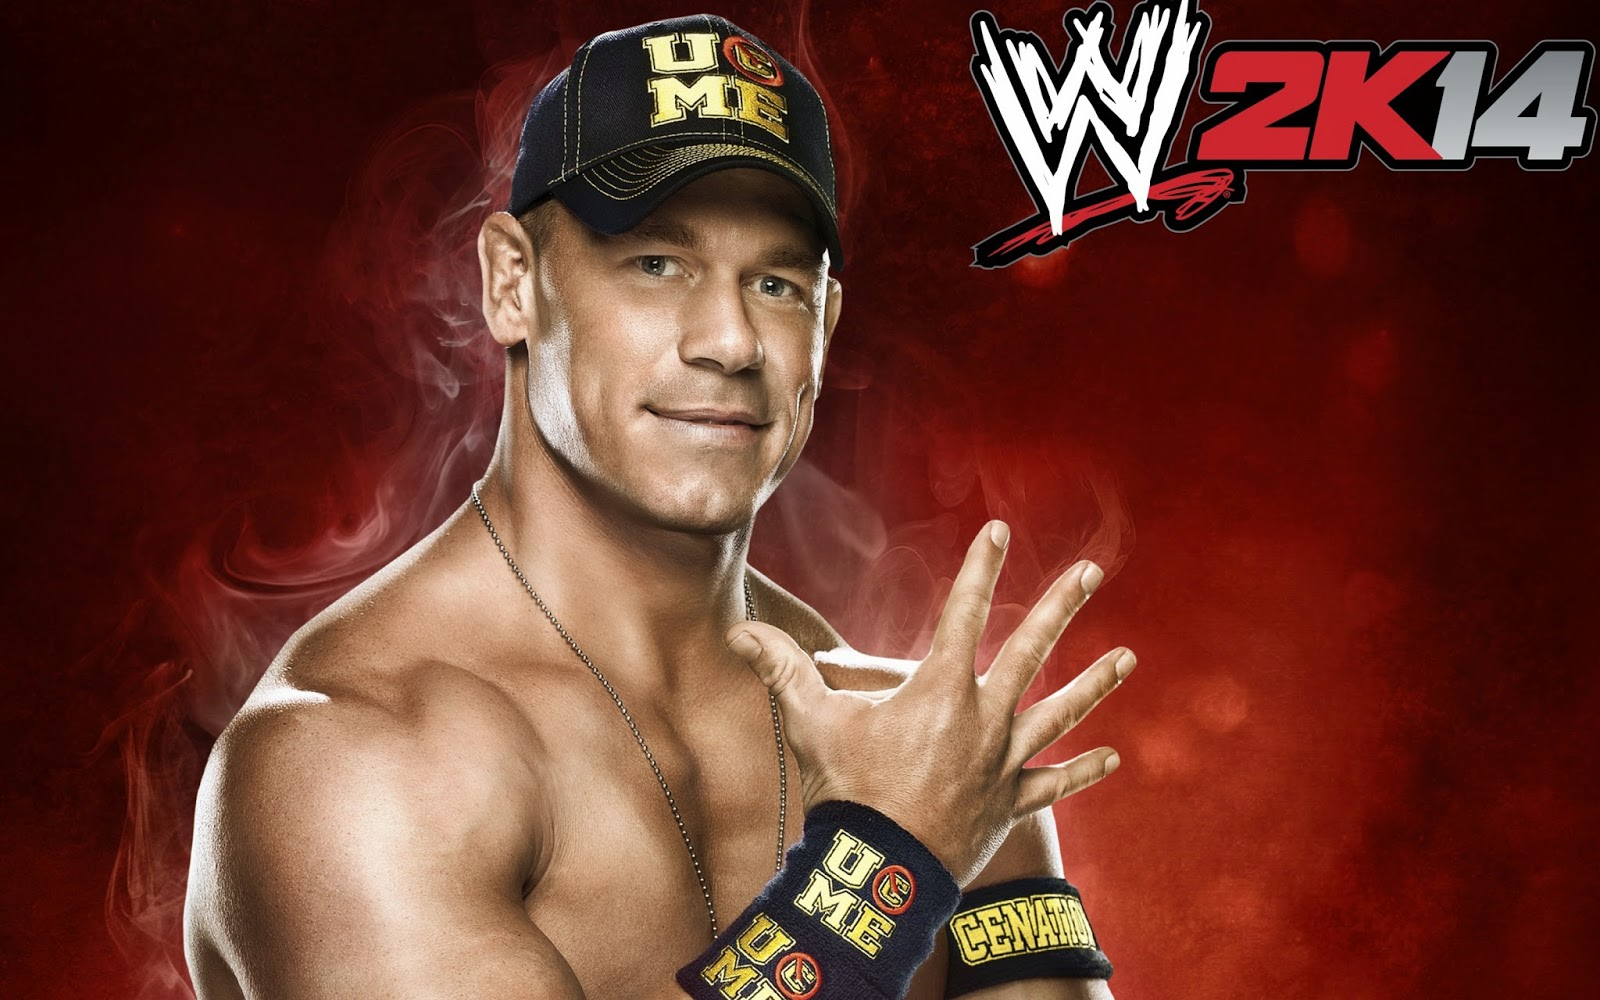 John cena wwe 2k14 - Wwe divas wallpapers ...